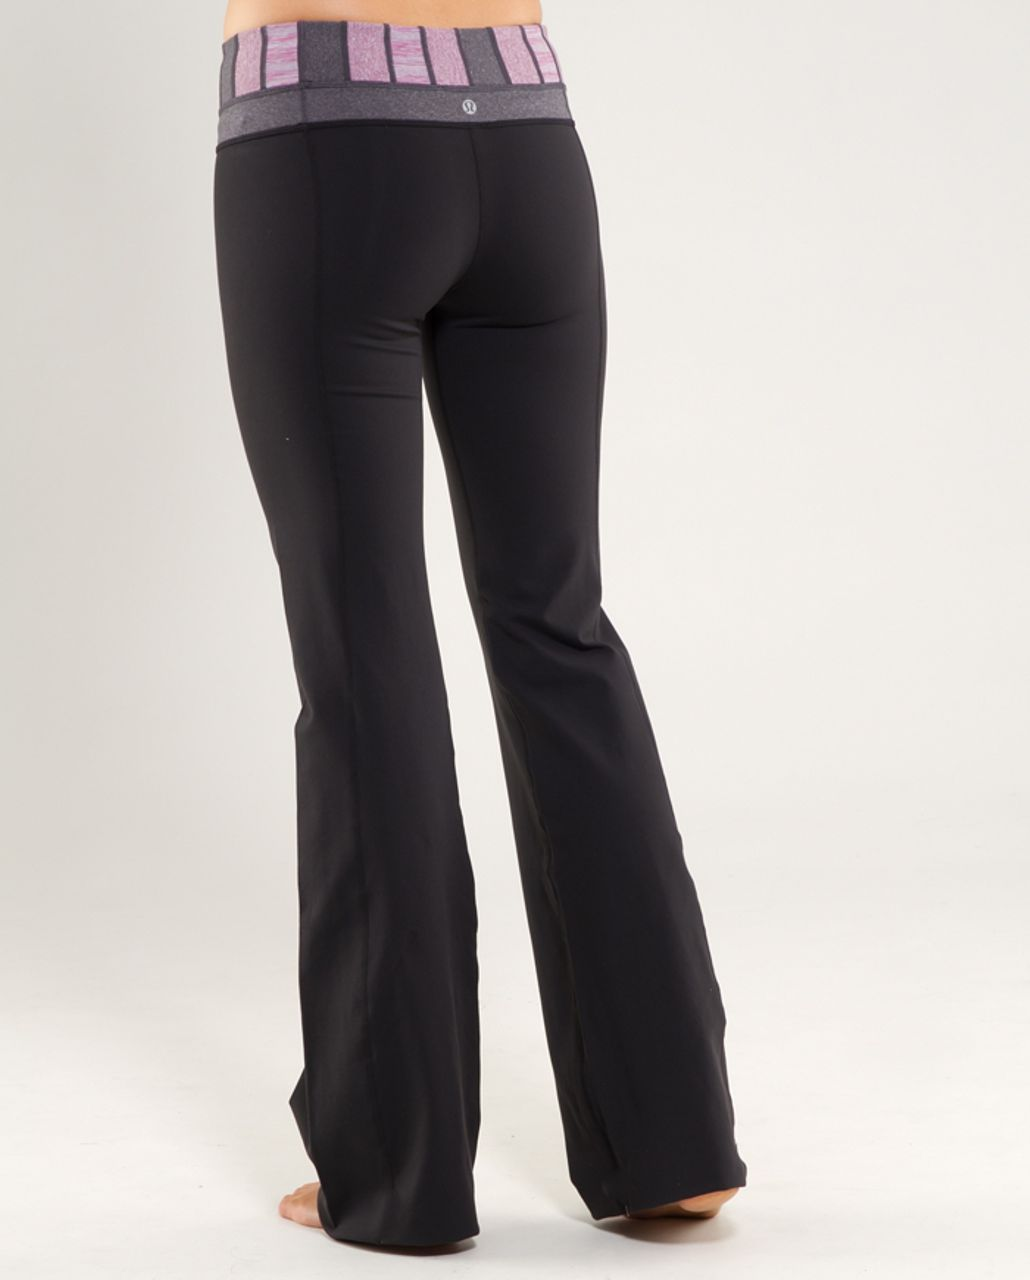 Lululemon Groove Pant (Tall) - Black /  Quilt 20 /  Heathered Coal